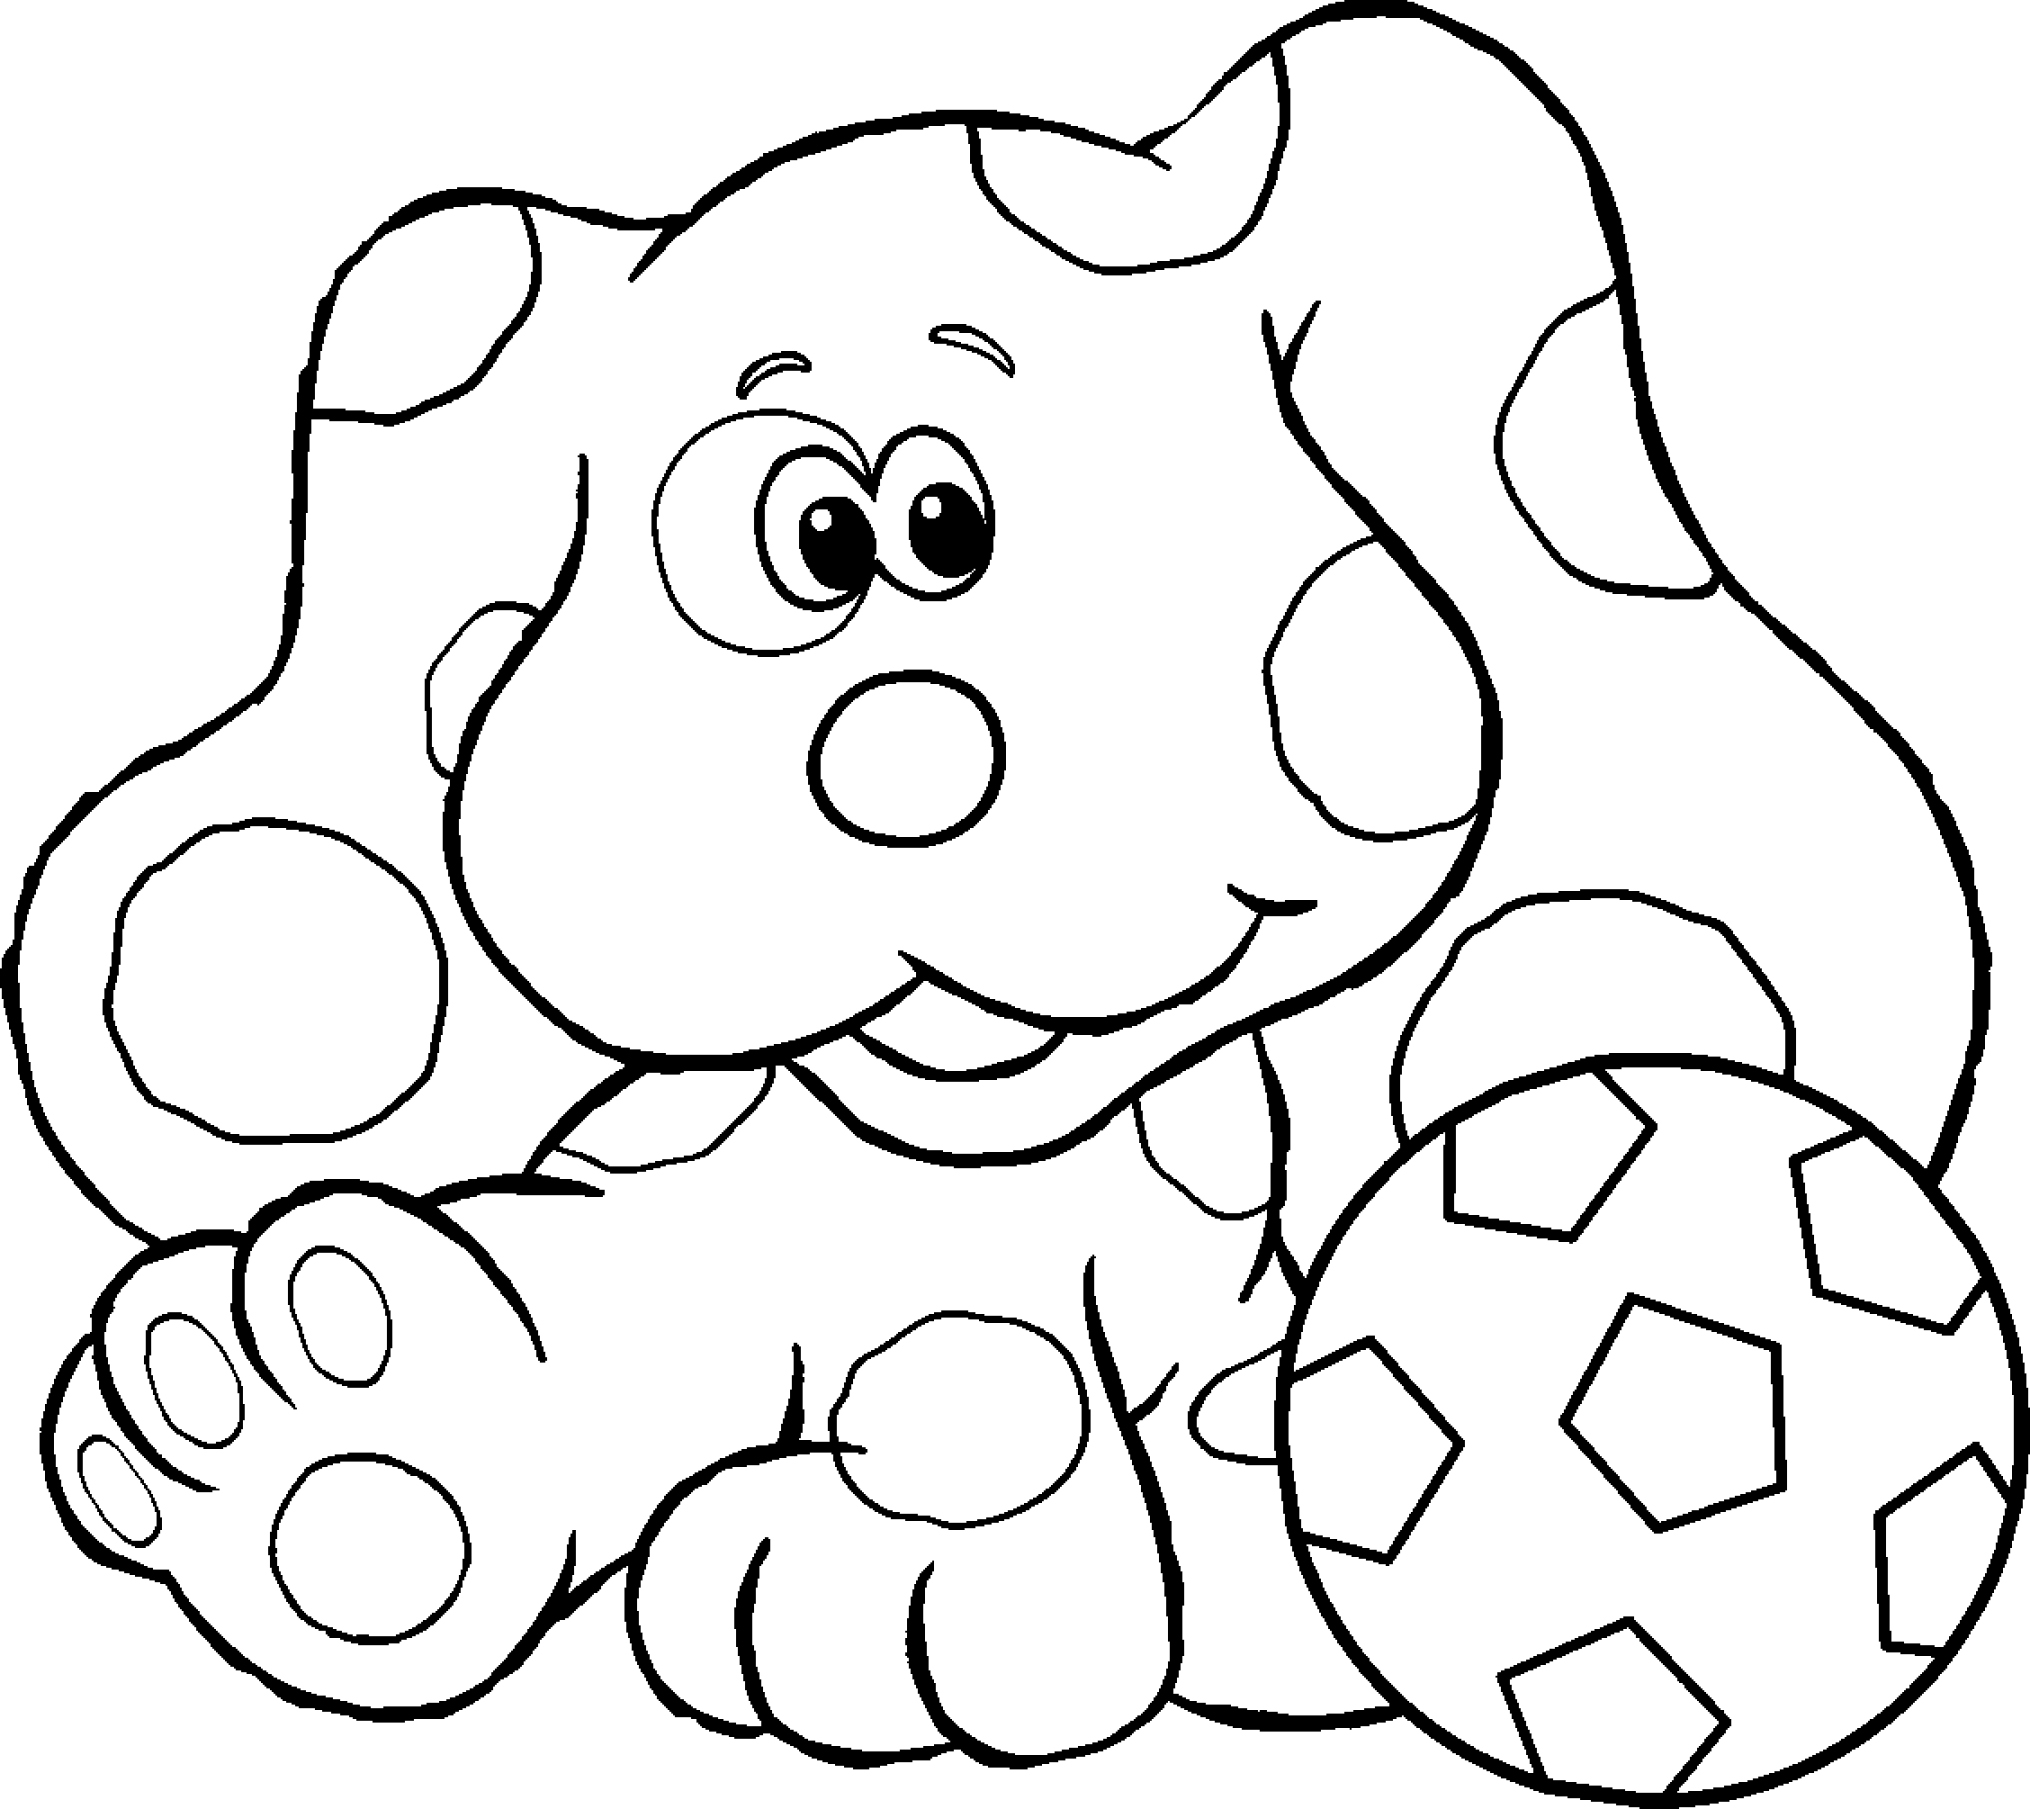 blue dog coloring pages - photo#16